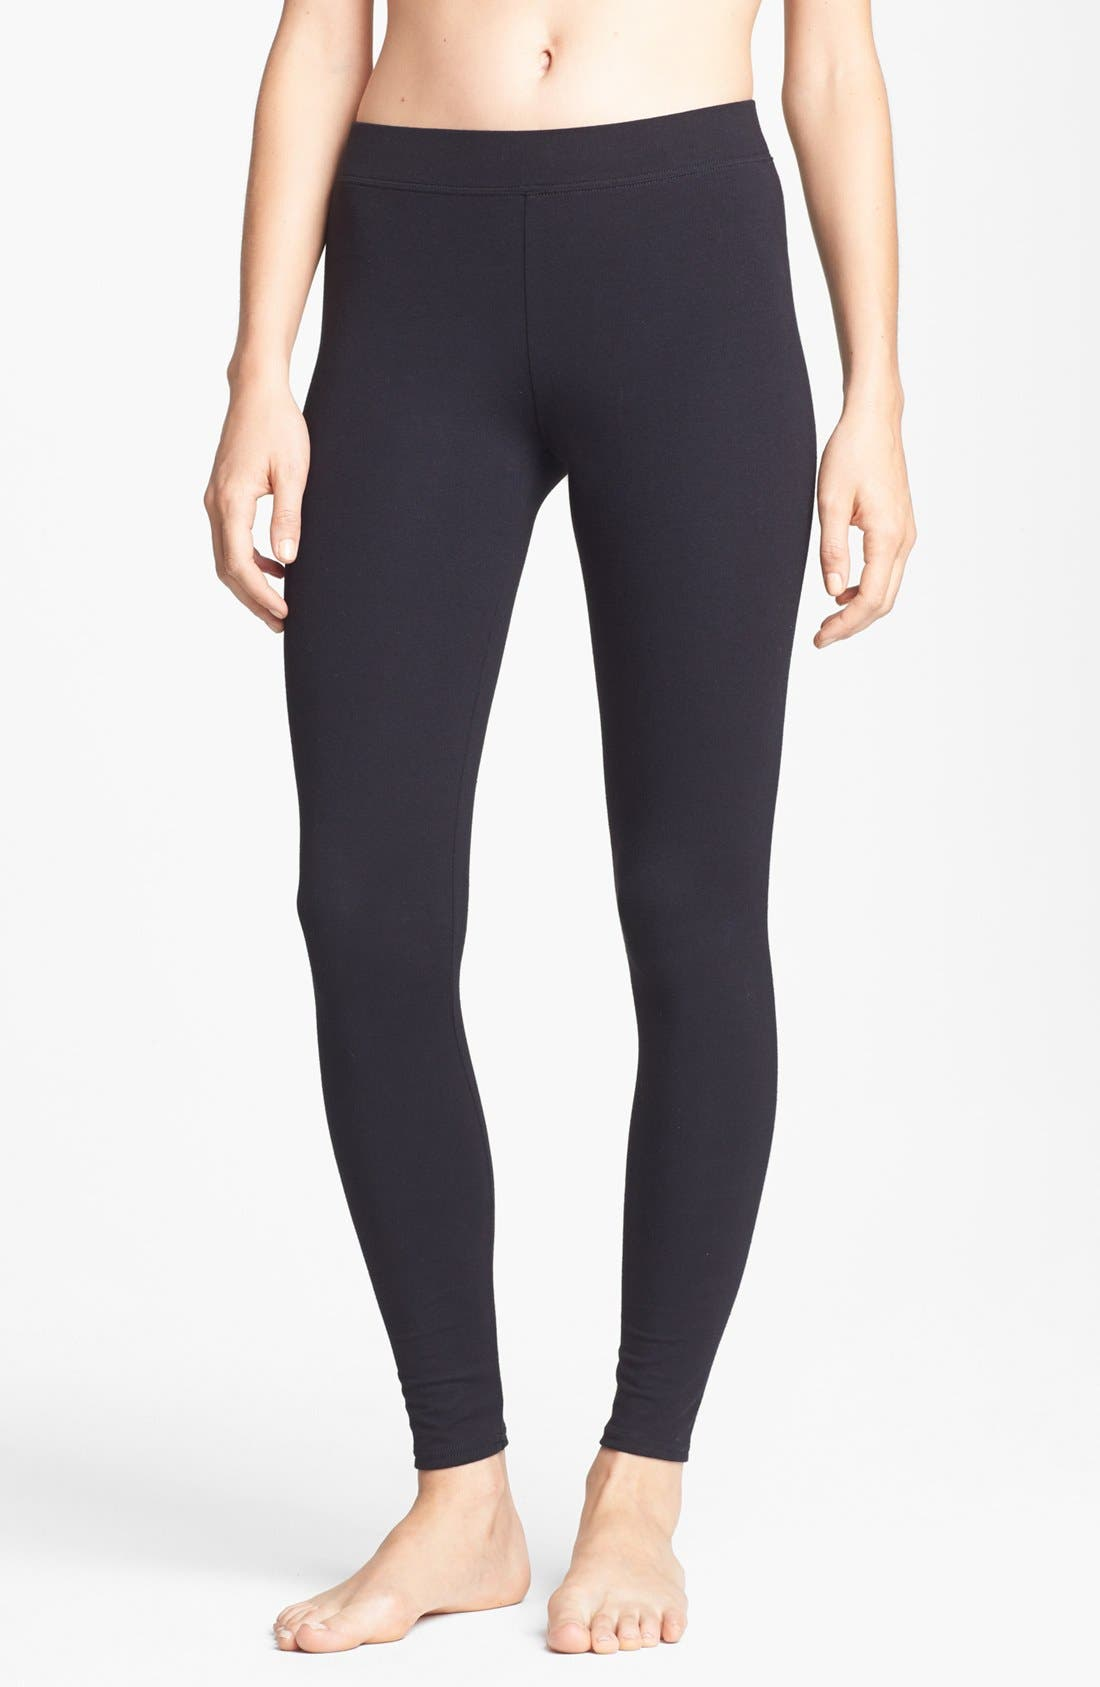 Main Image - Nordstrom Go-To Leggings